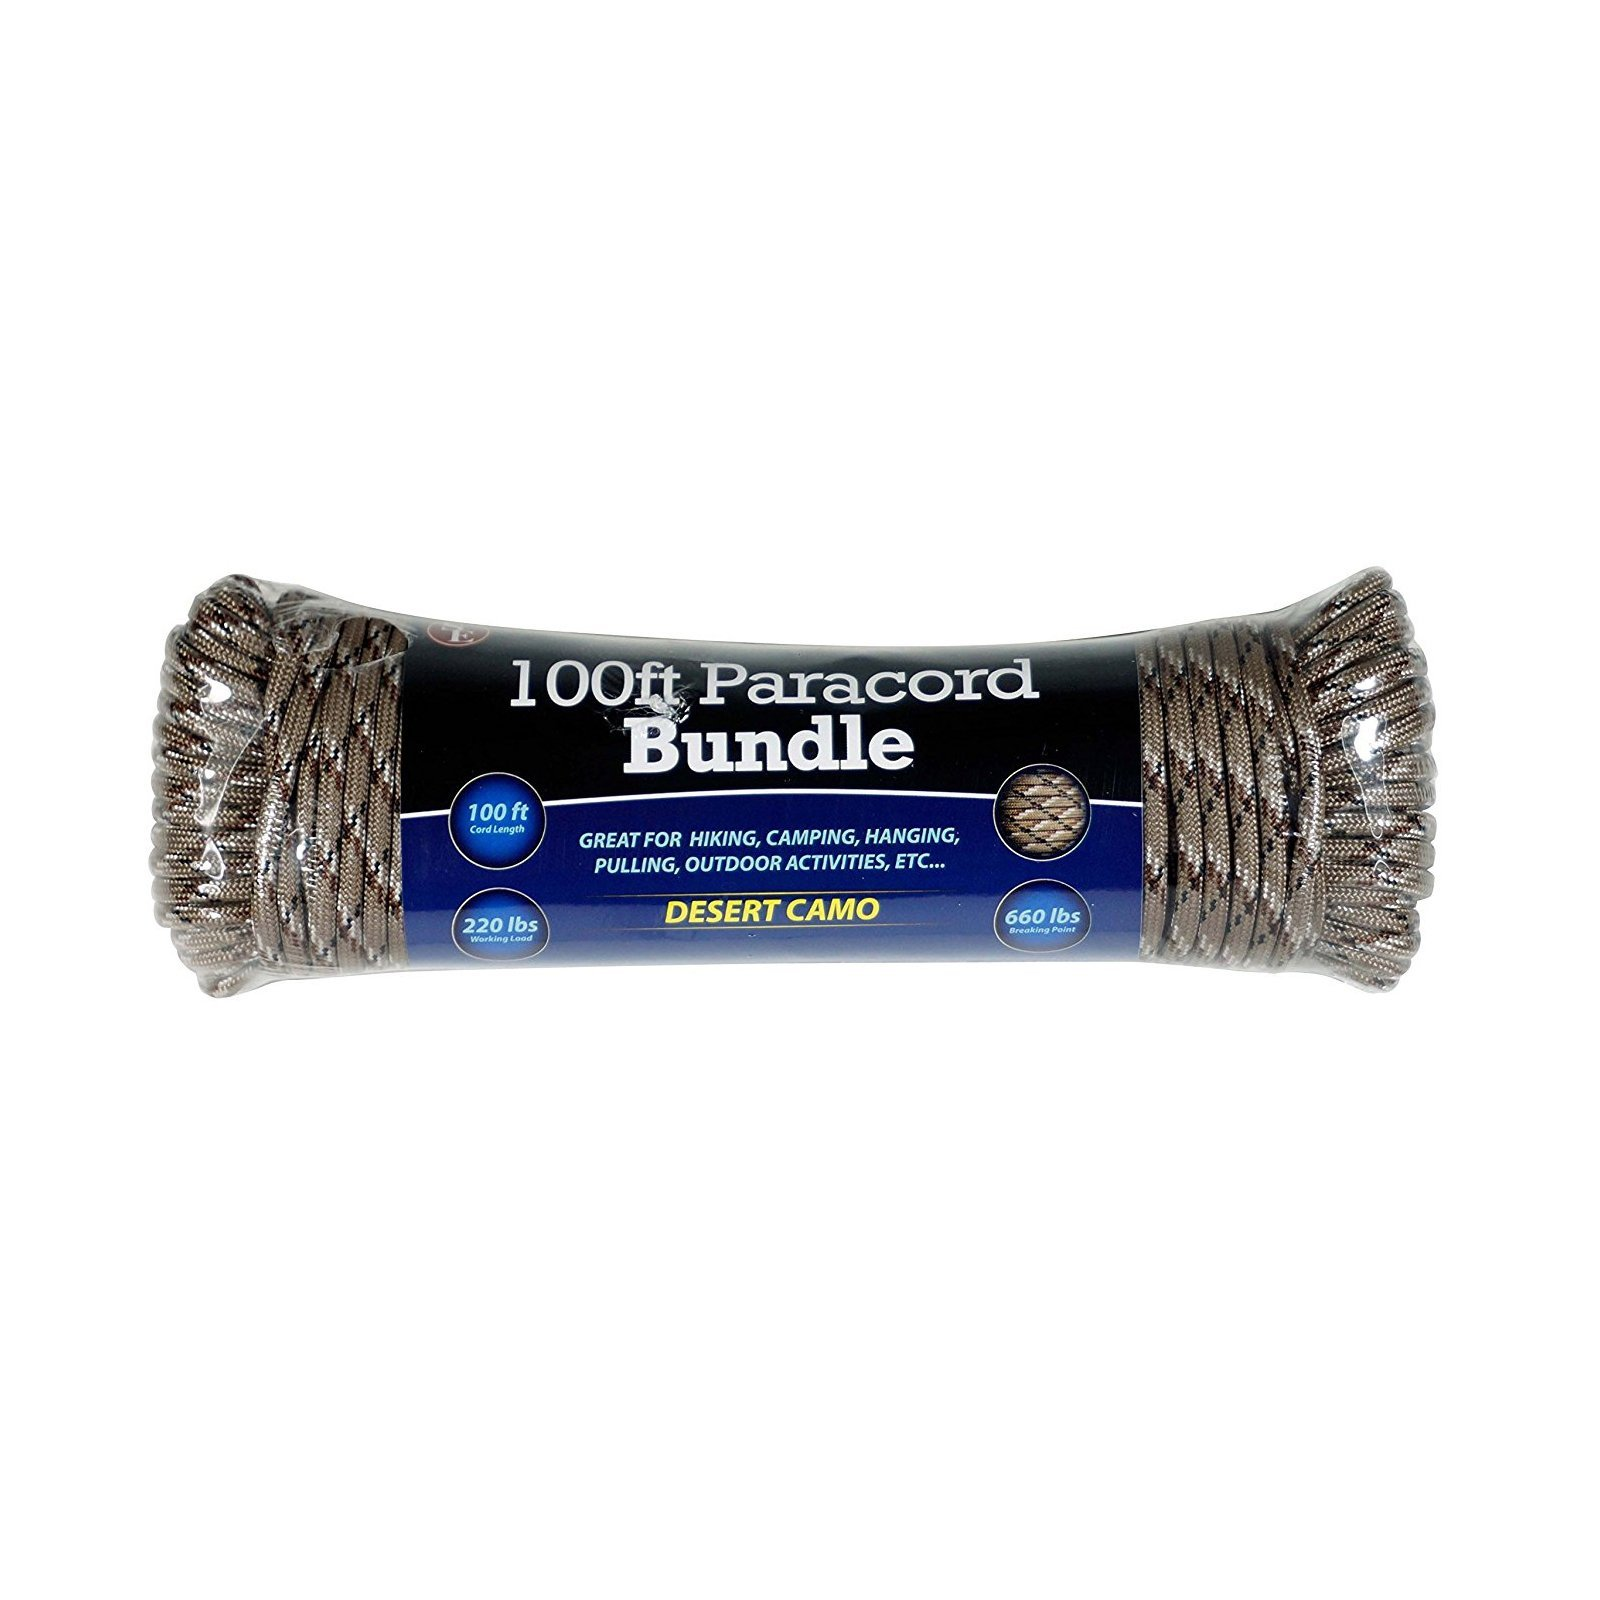 In Package Outdoor Gear Rope- Working Load of 220 lbs and Breaking Point of 660 lbs